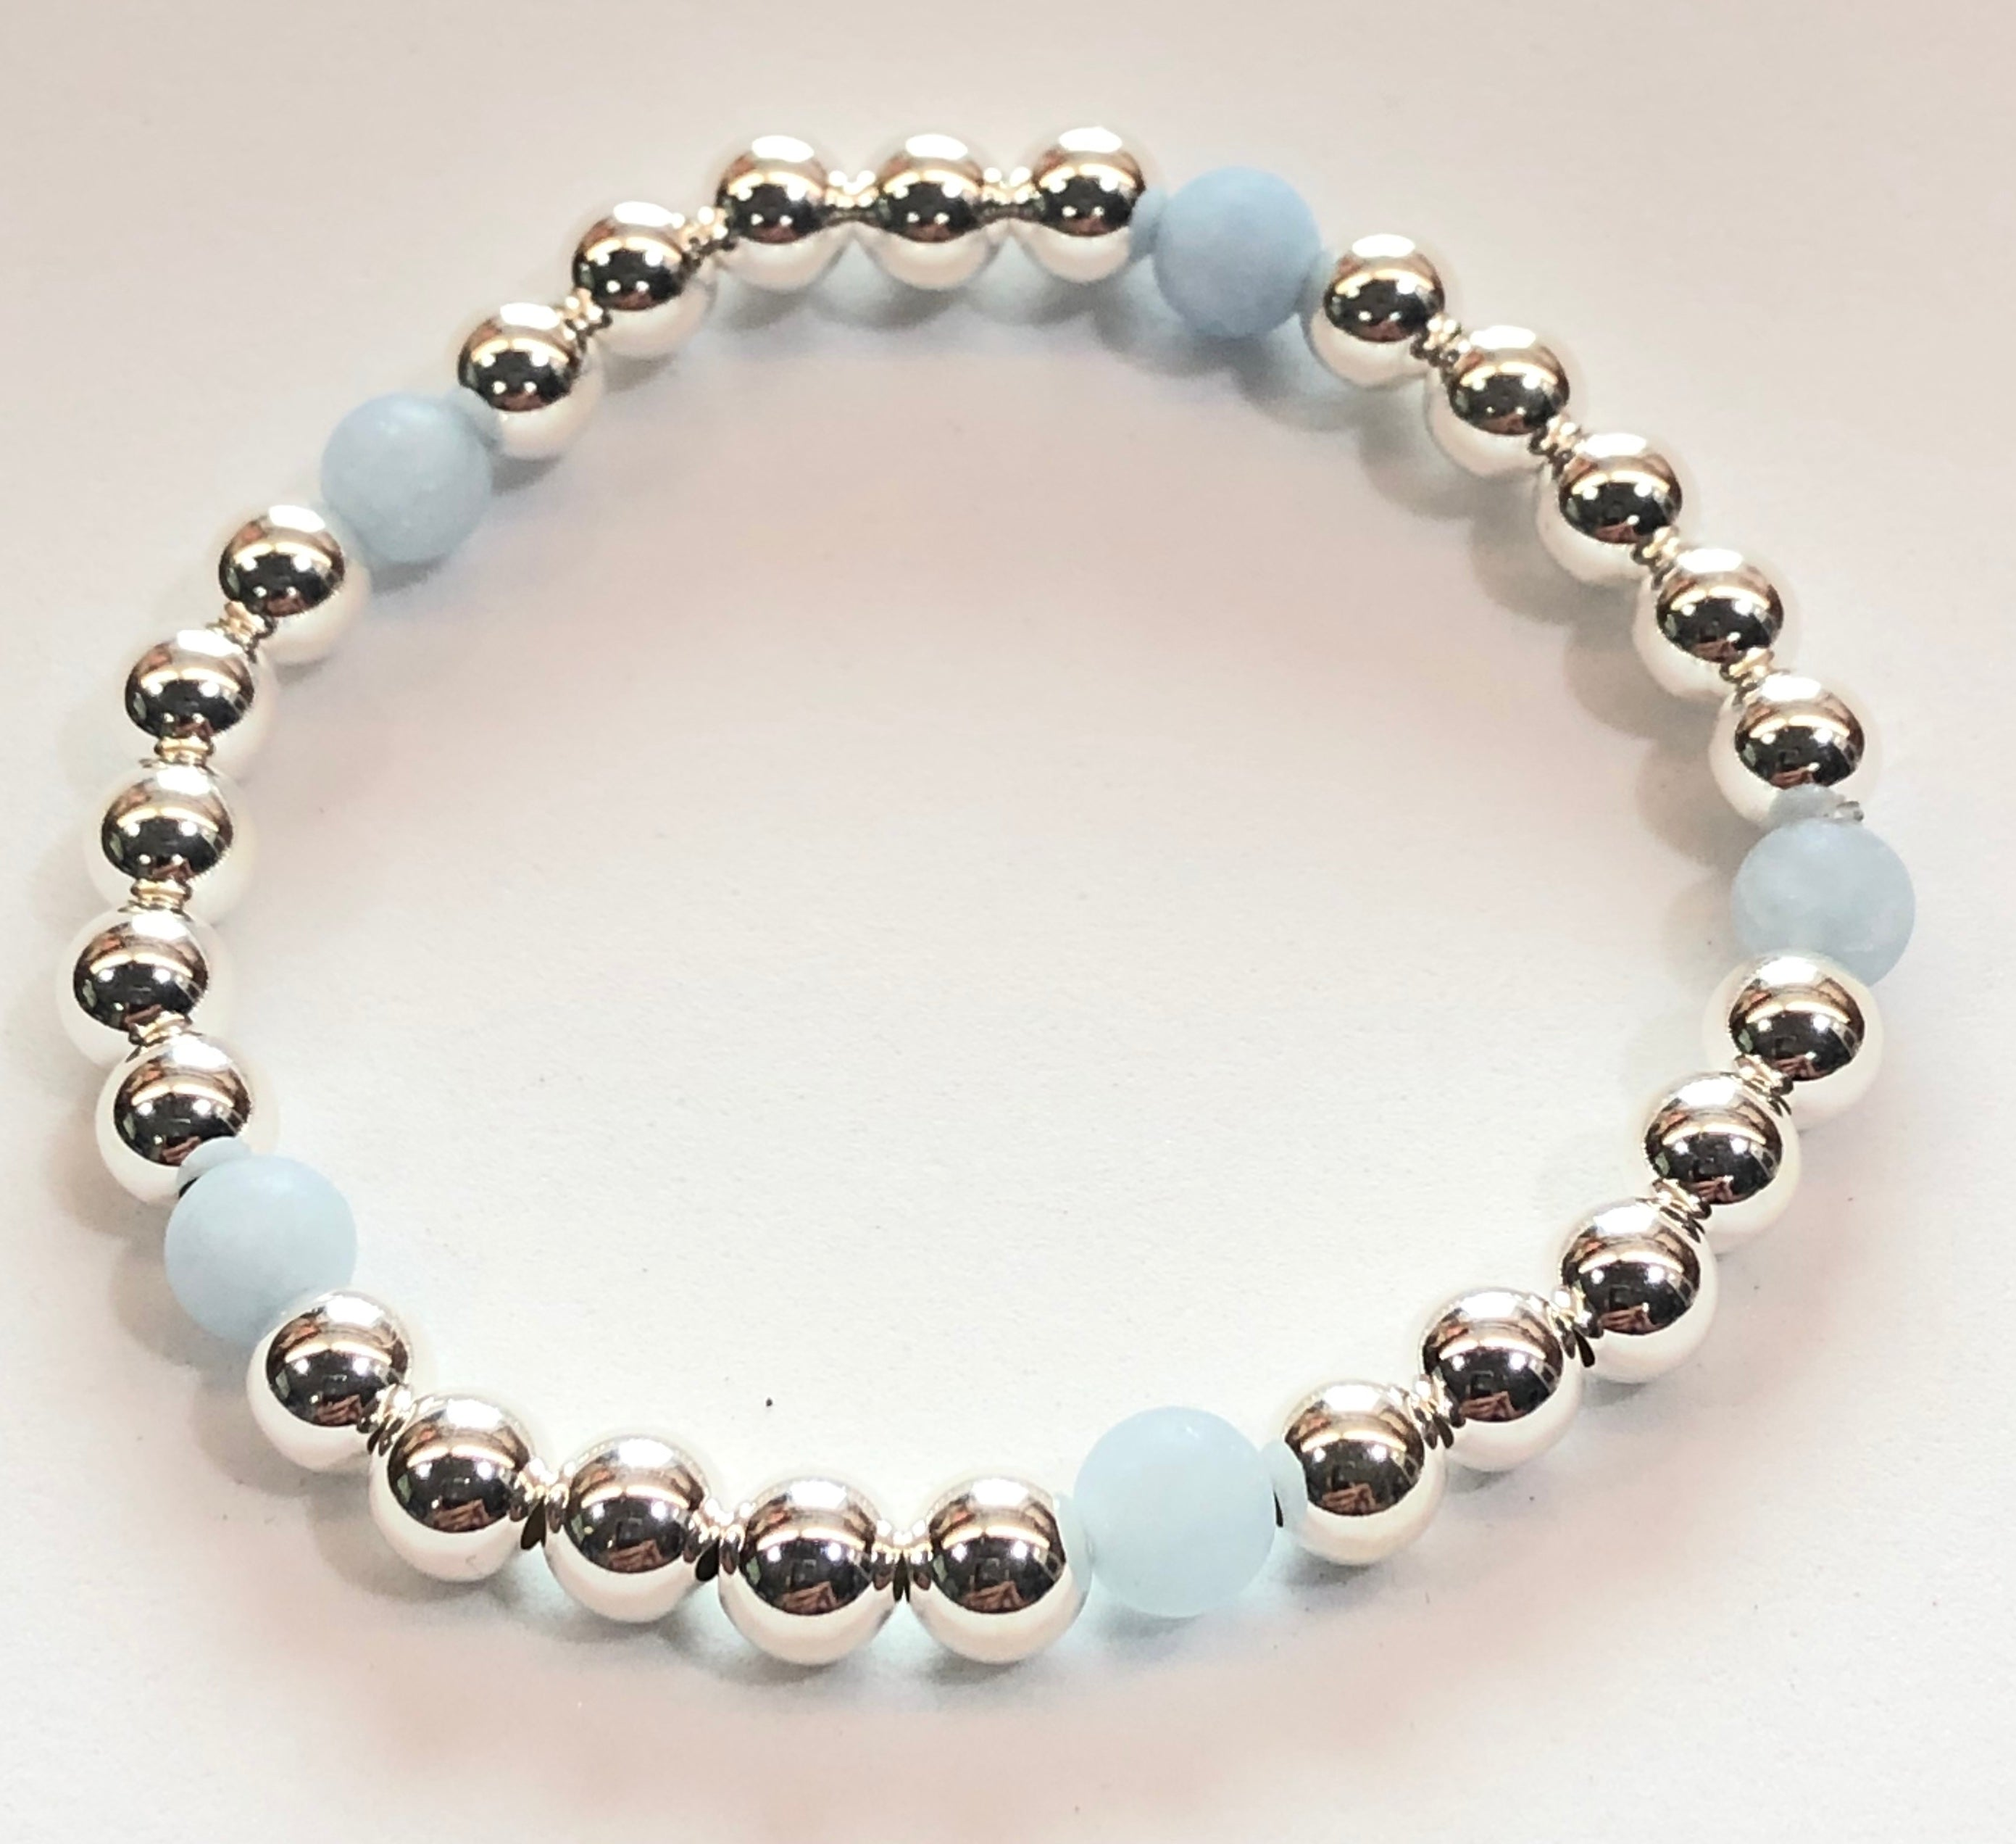 4mm Sterling Silver Bracelet with 5 Matte Aquamarine